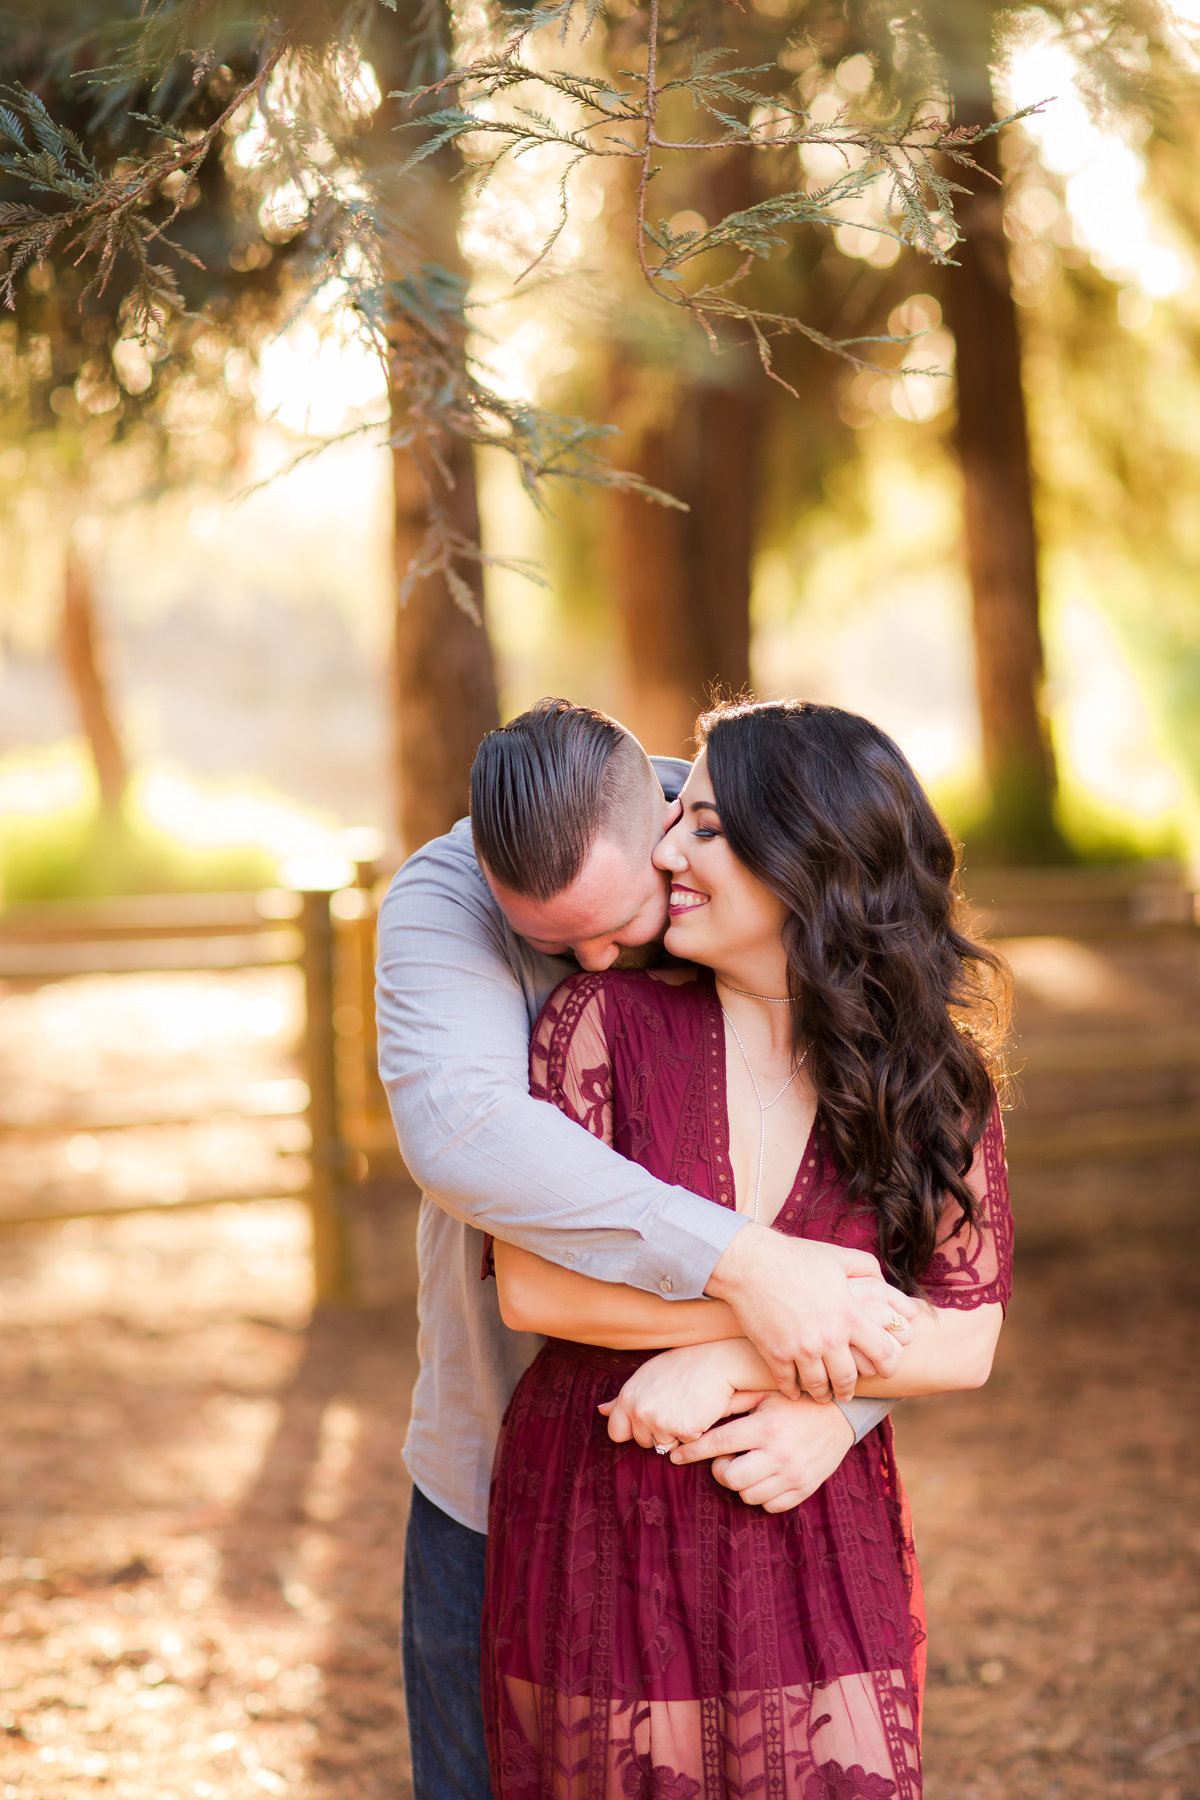 bride and groom engagement nature outdoor wedding colorado wedding romantic